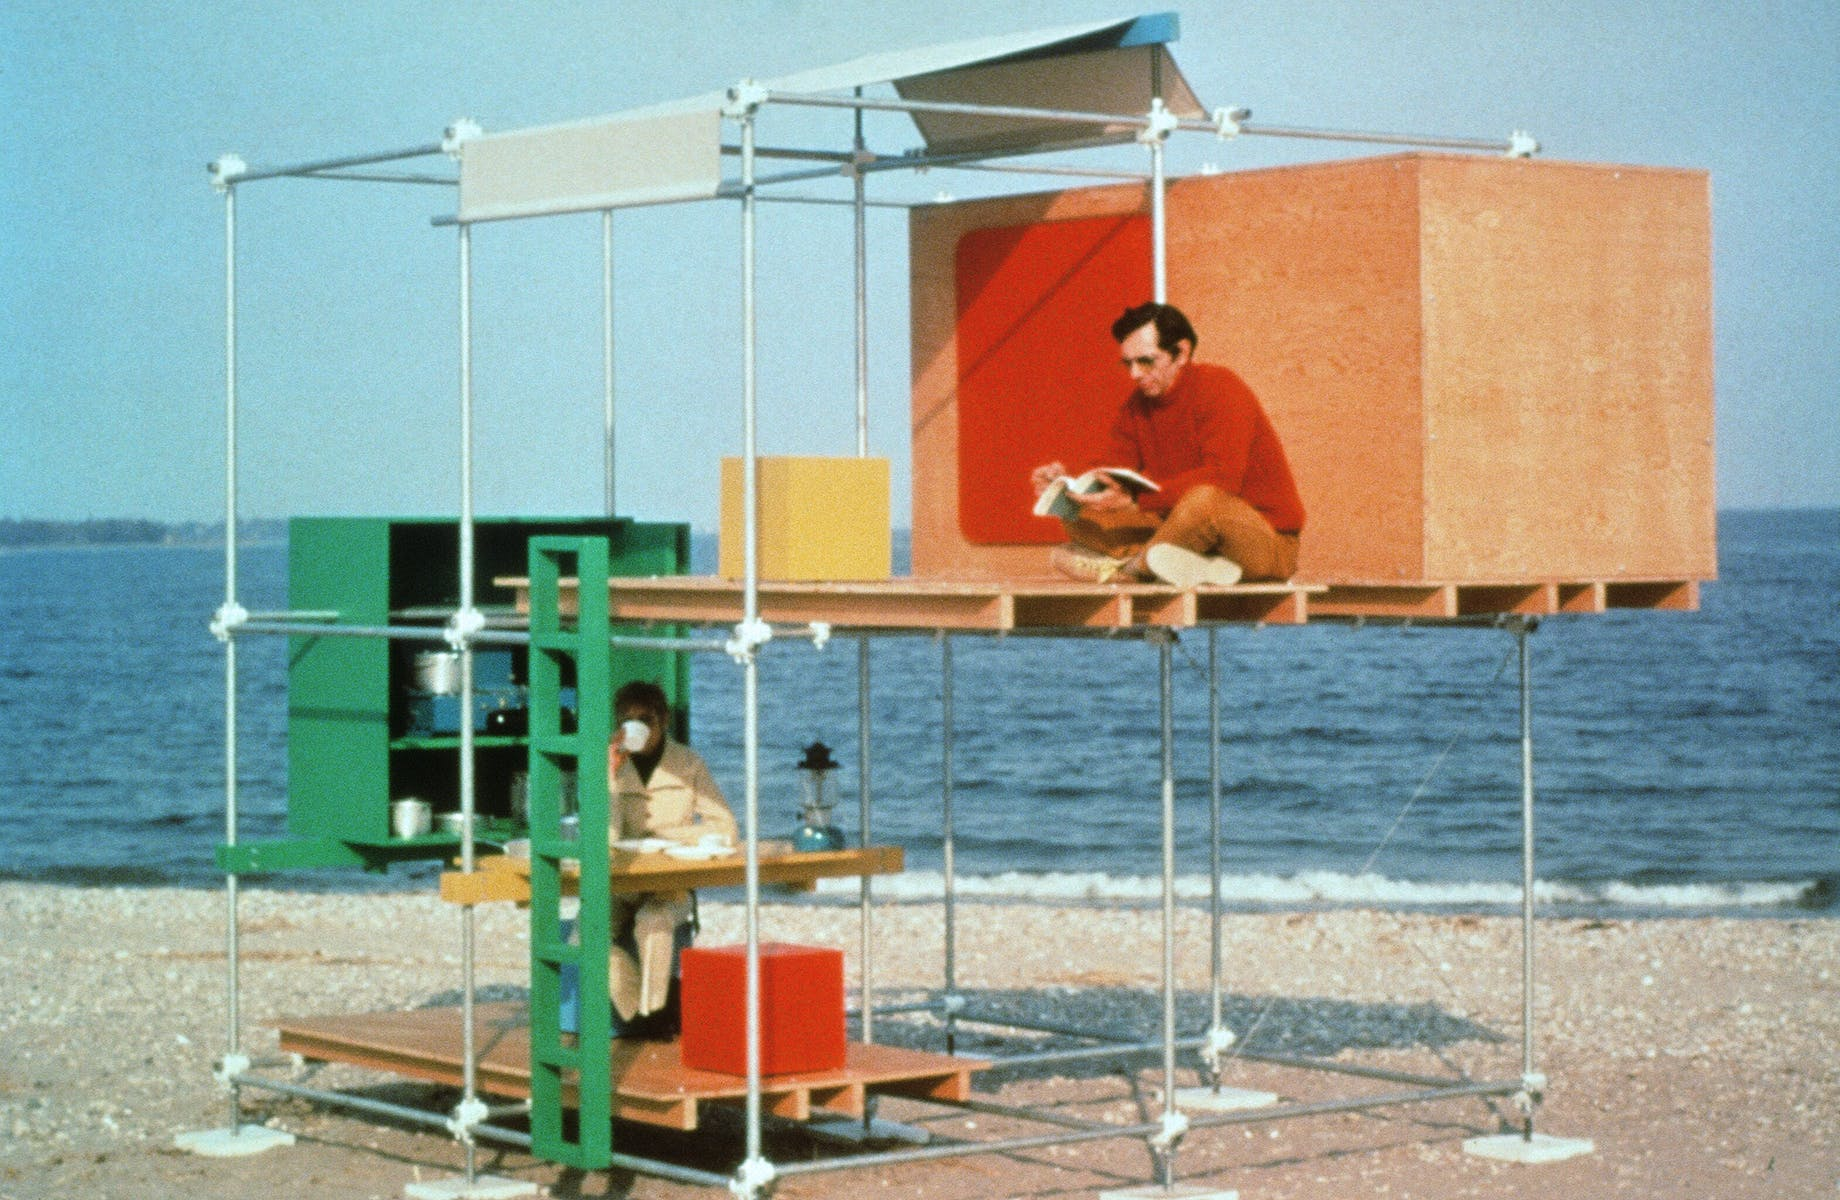 Two men sitting in a two-story structure made of metal poles and wooden panels on the beach